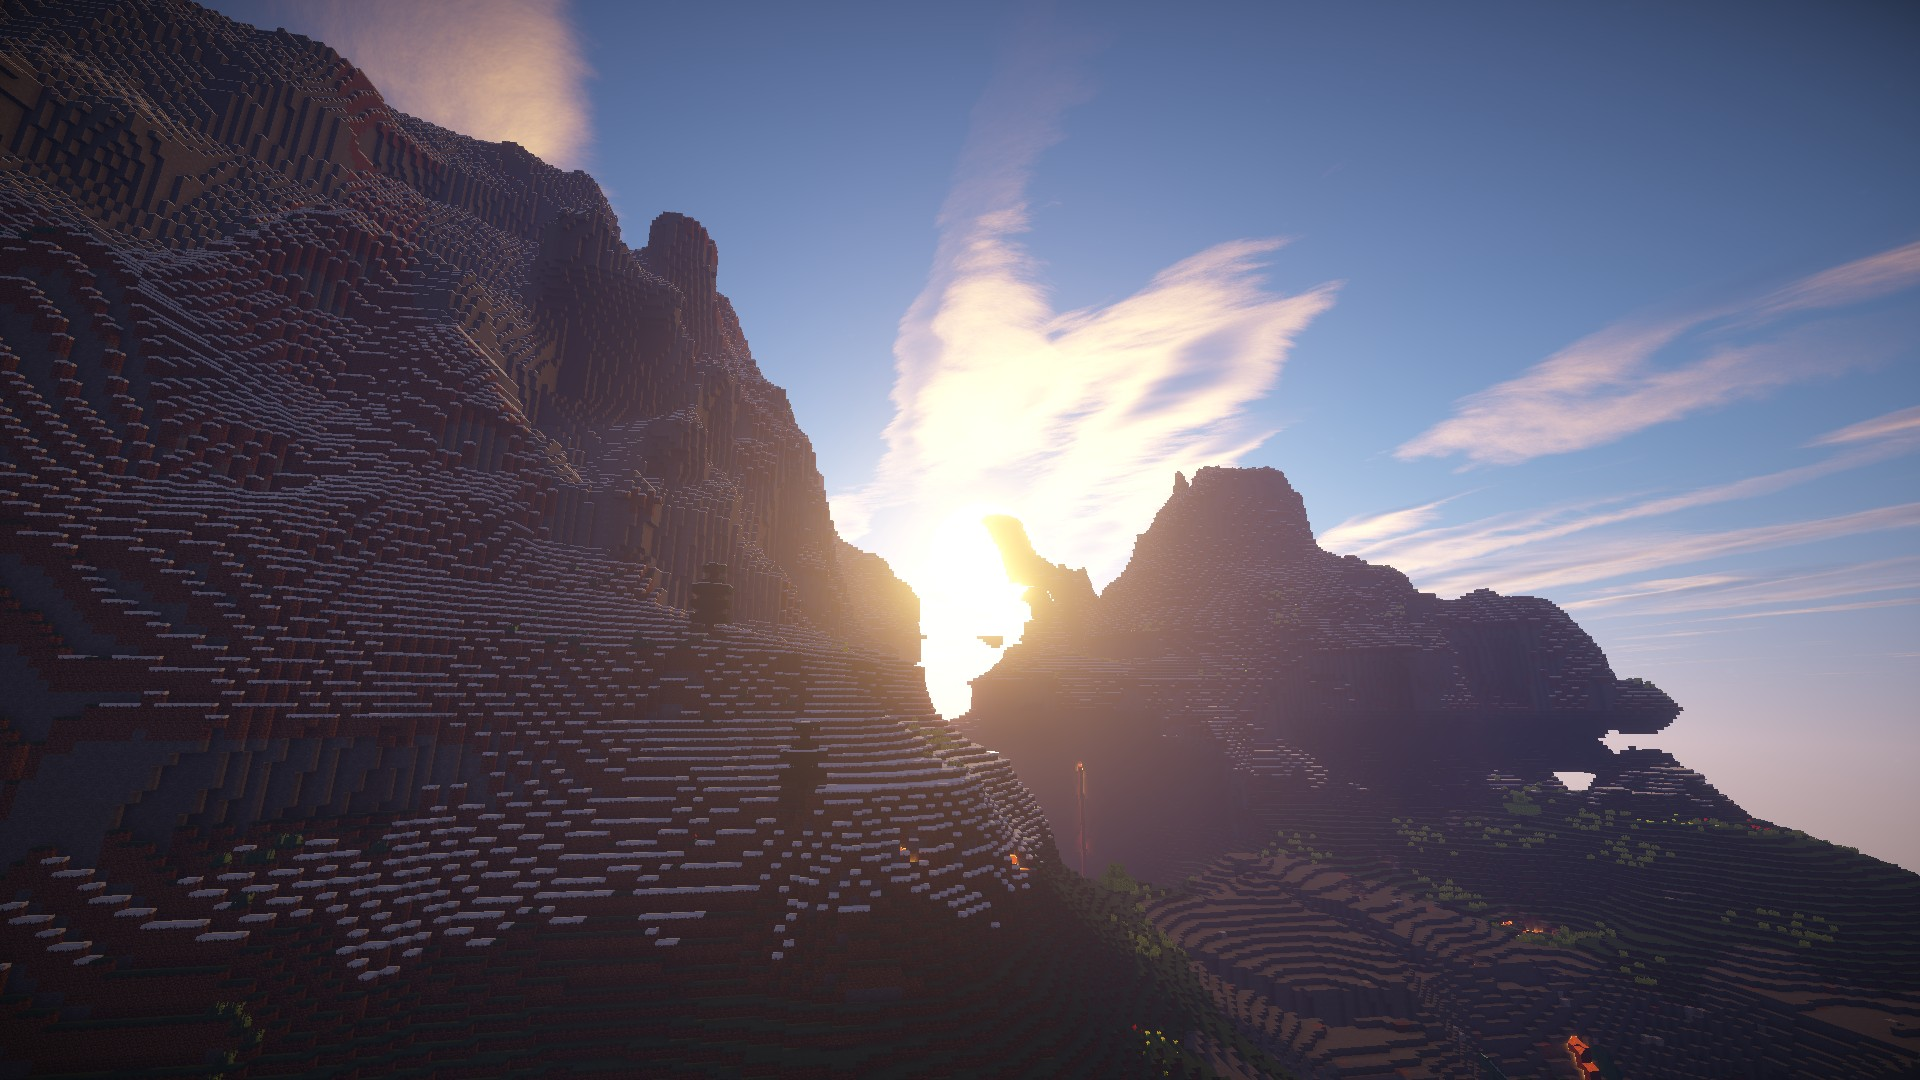 Realistic Minecraft Desktop Wallpapers [With GLSL Shaders ...